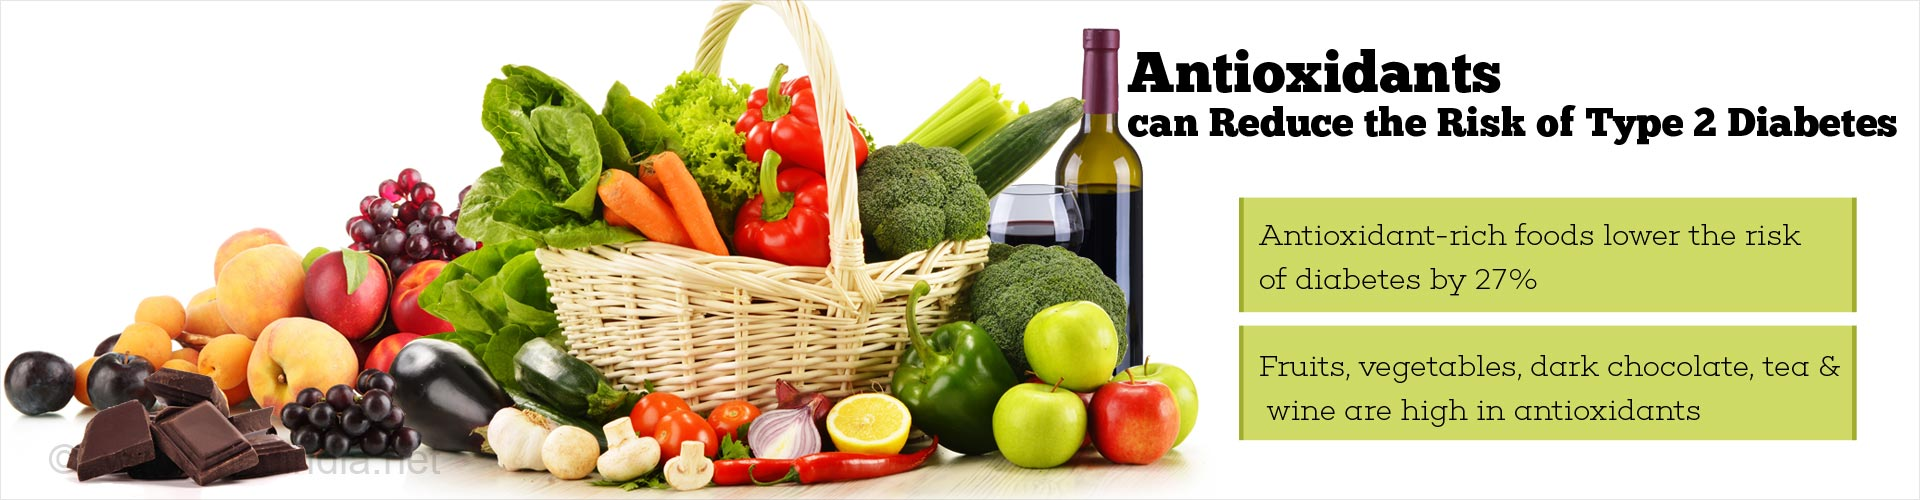 Antioxidant-rich Foods can Lower the Risk of Type 2 Diabetes